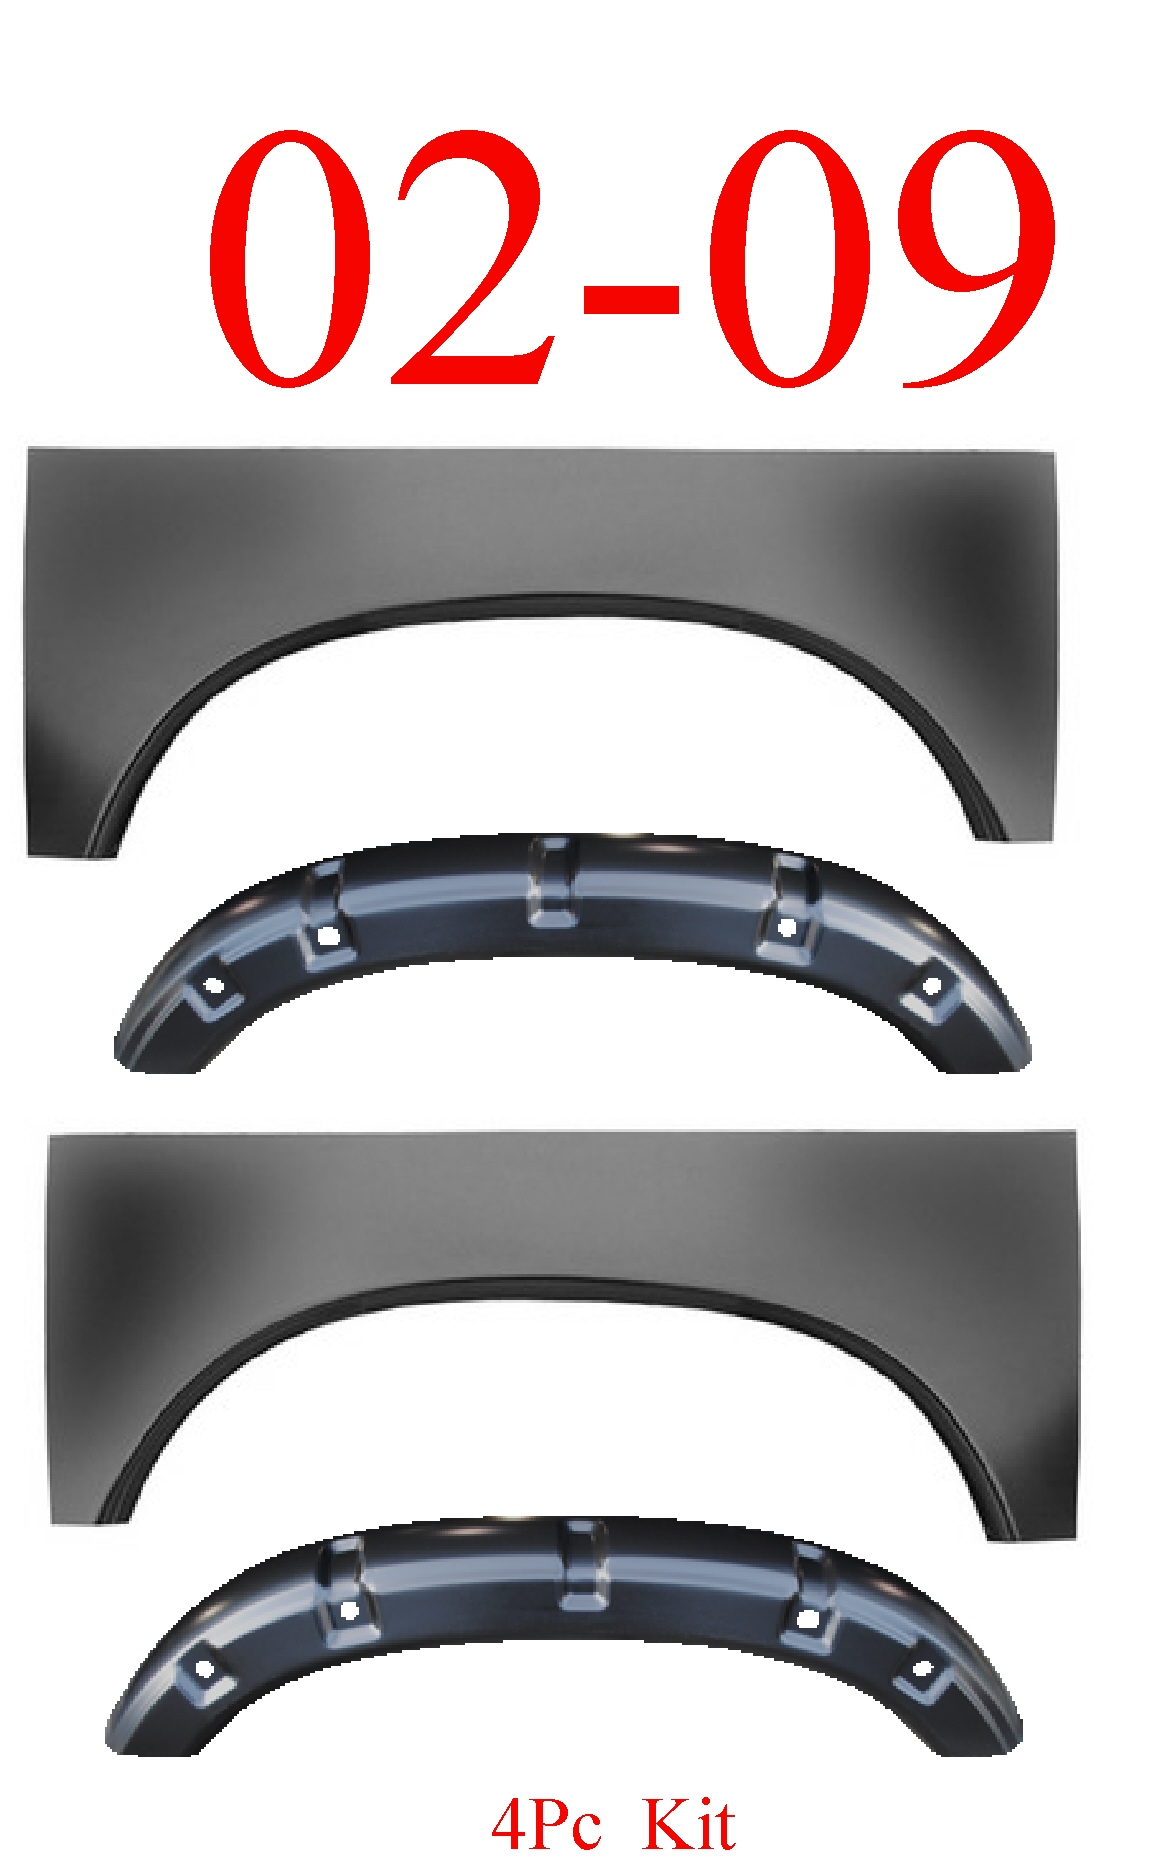 02-09 Dodge Ram 4Pc Arch & Outer Wheelhouse Set